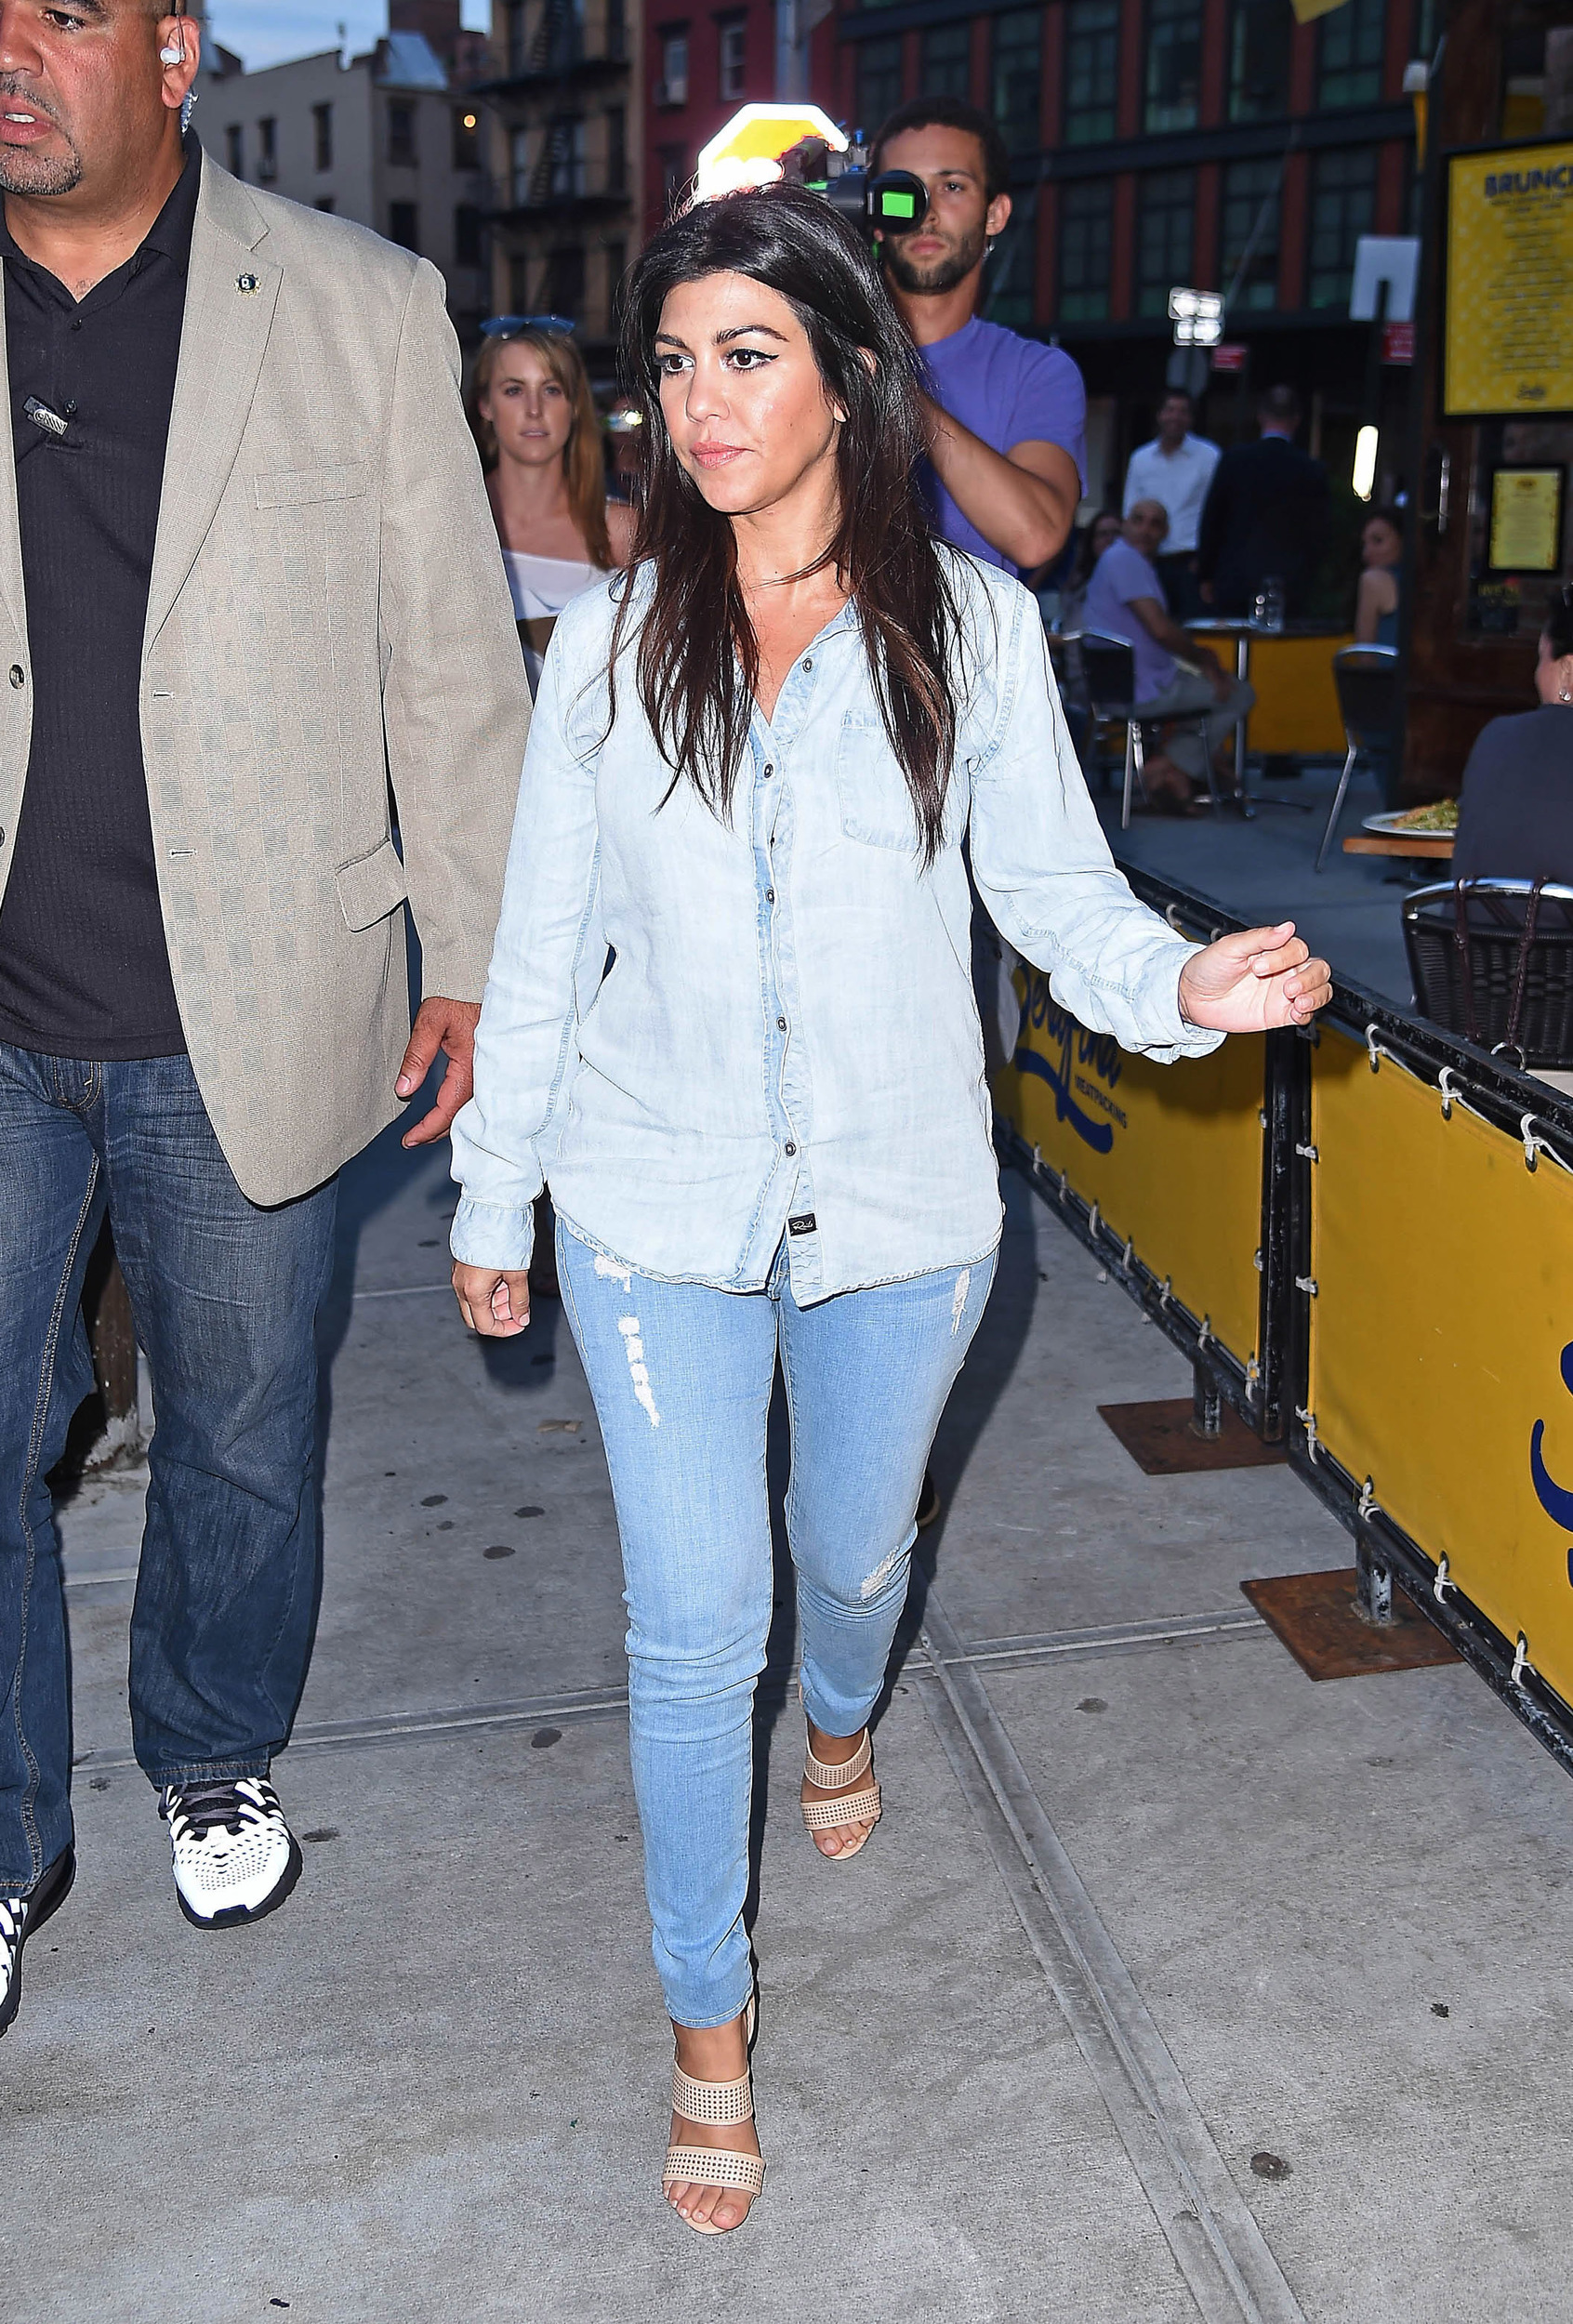 Kourtney Kardashian 39 S Casual Chic Style